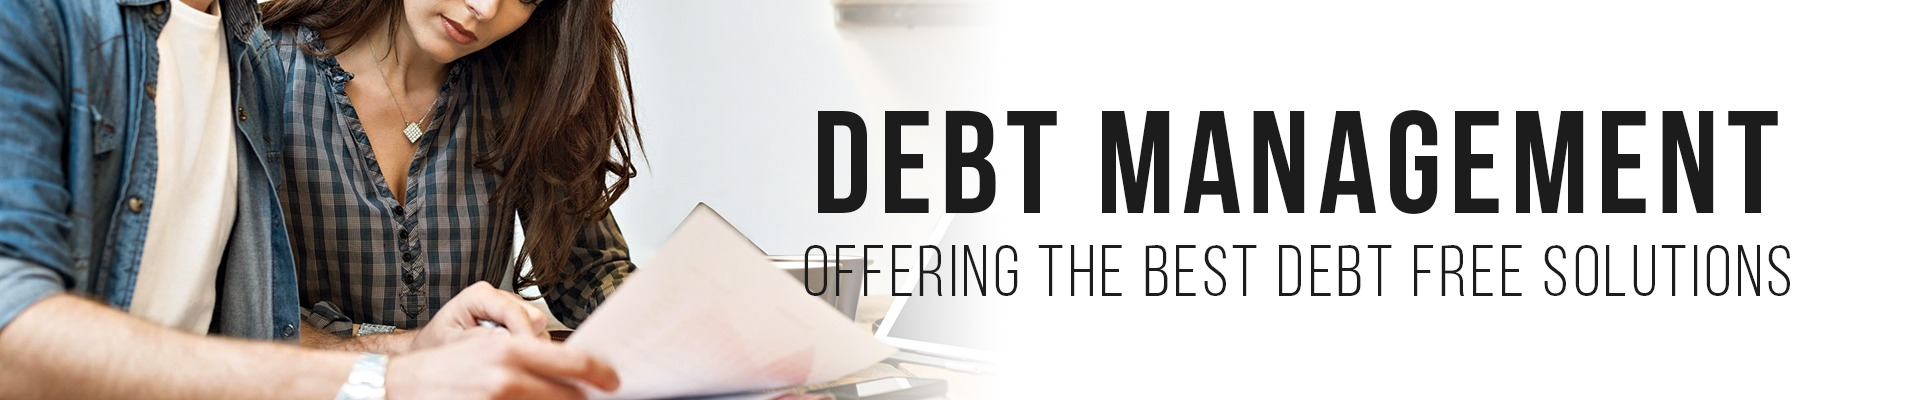 debt-management-banner